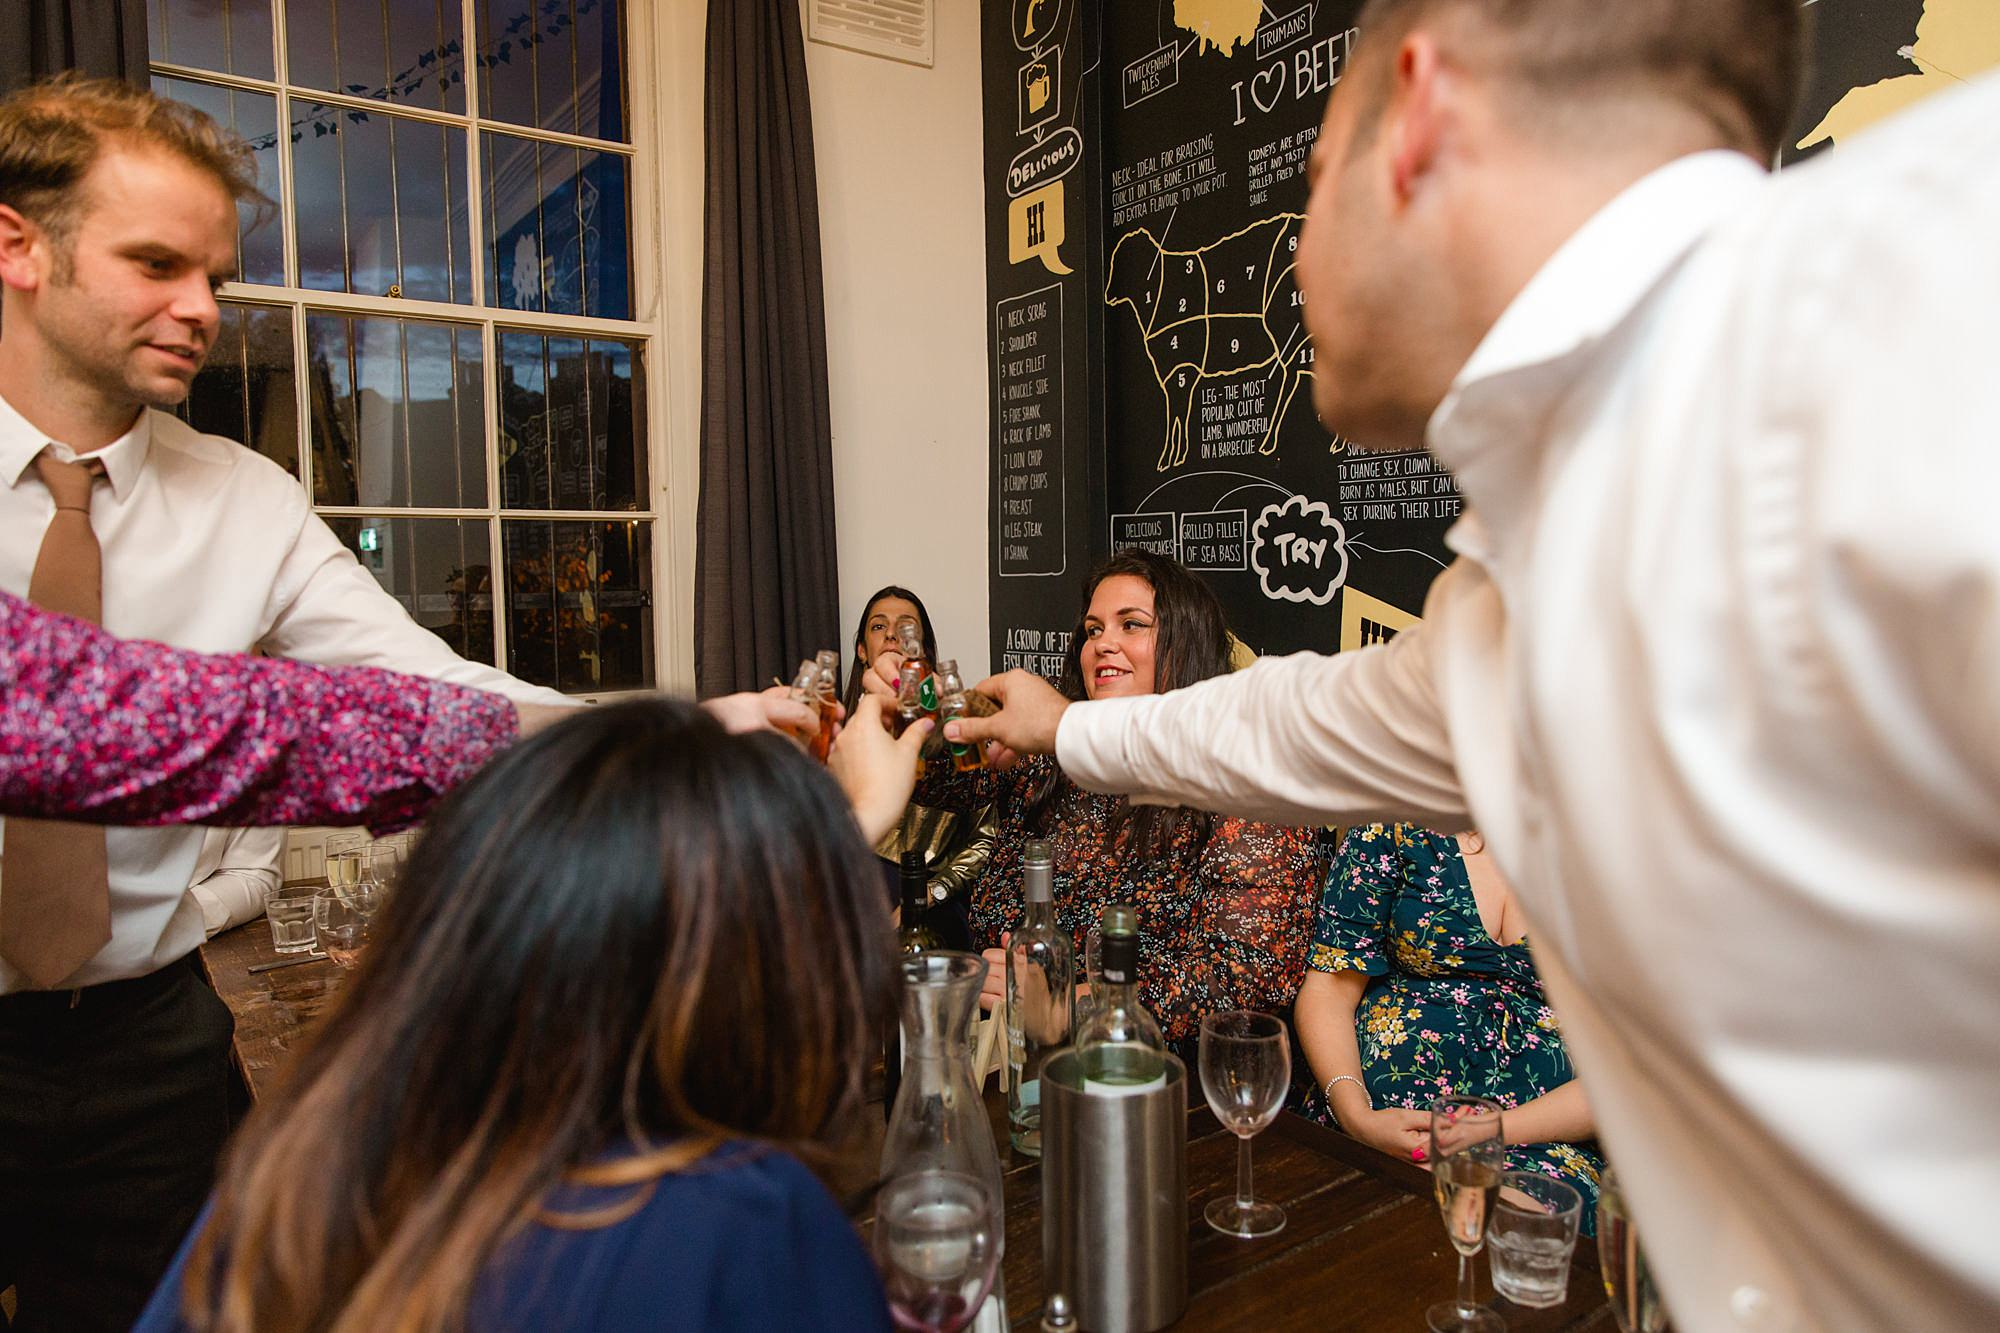 Prince albert camden wedding guests toast with shots